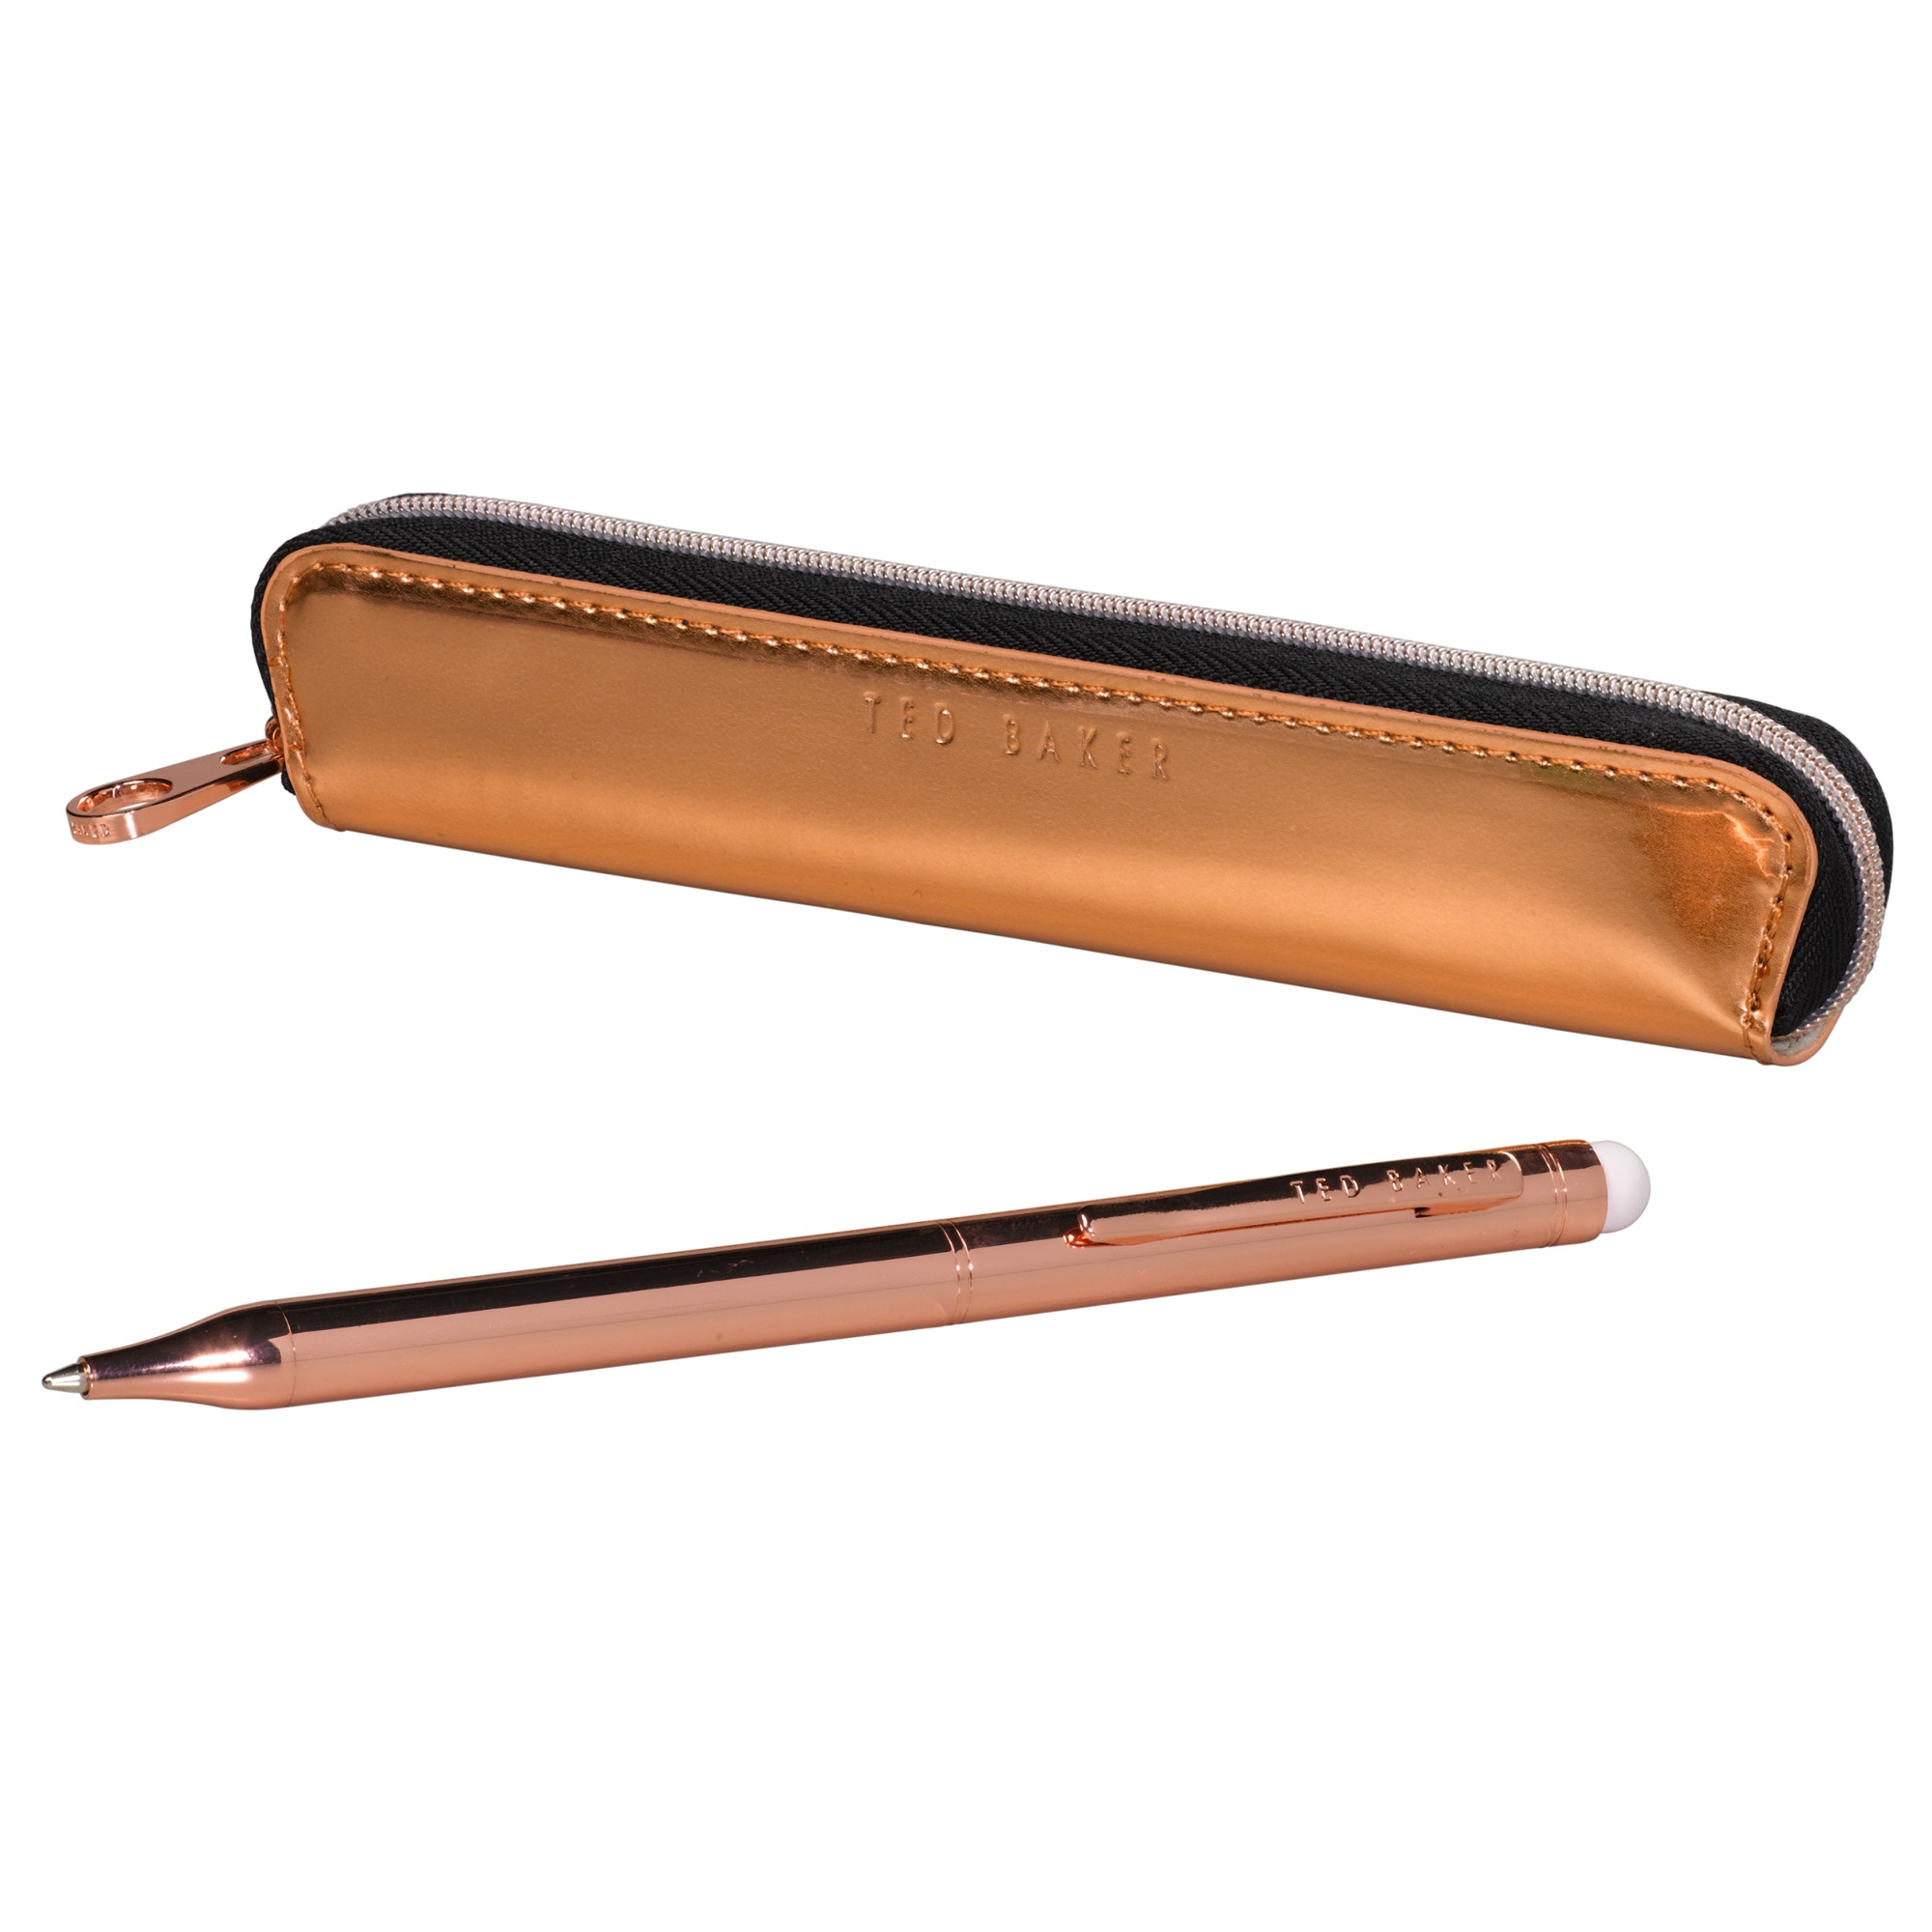 TED BAKER BALLPOINT PEN SET TOUCH SCREEN STYLUS /& CASE ROSE GOLD GIFT BOXED